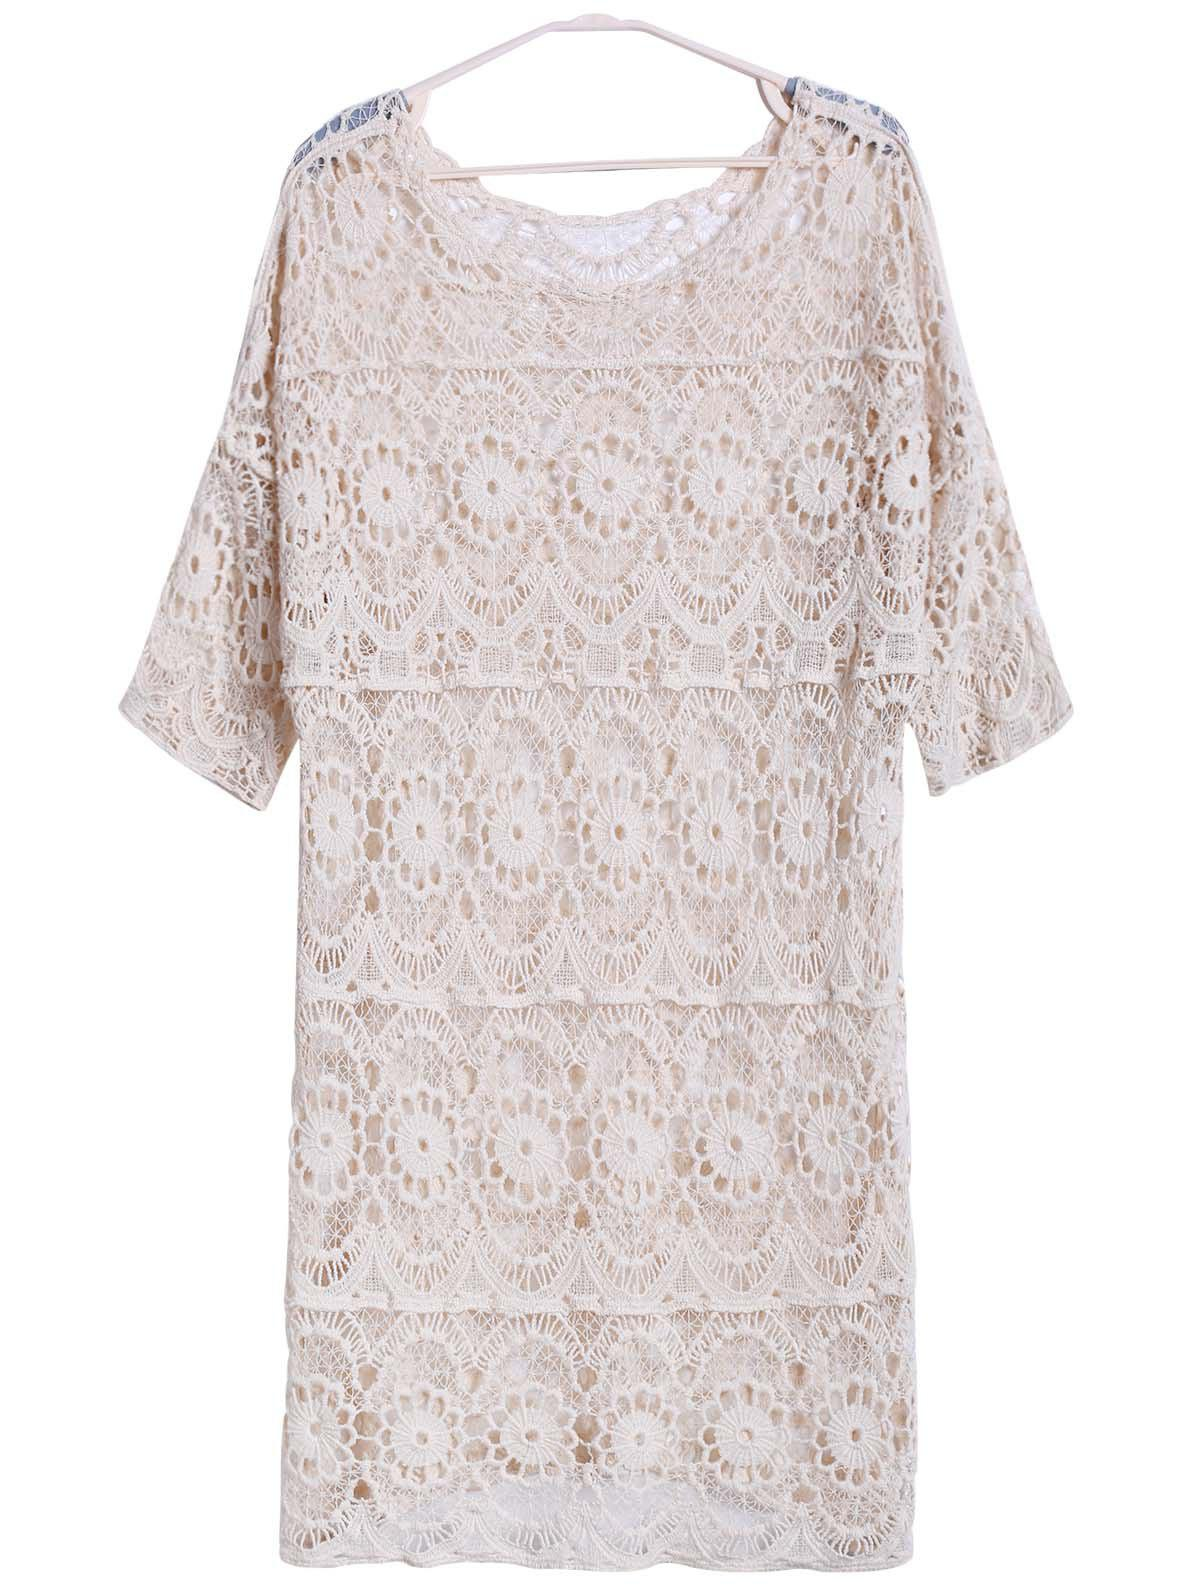 Sexy Scoop Neck 3/4 Sleeve Hollow Out Women's Cover-Up - NUDE ONE SIZE(FIT SIZE XS TO M)